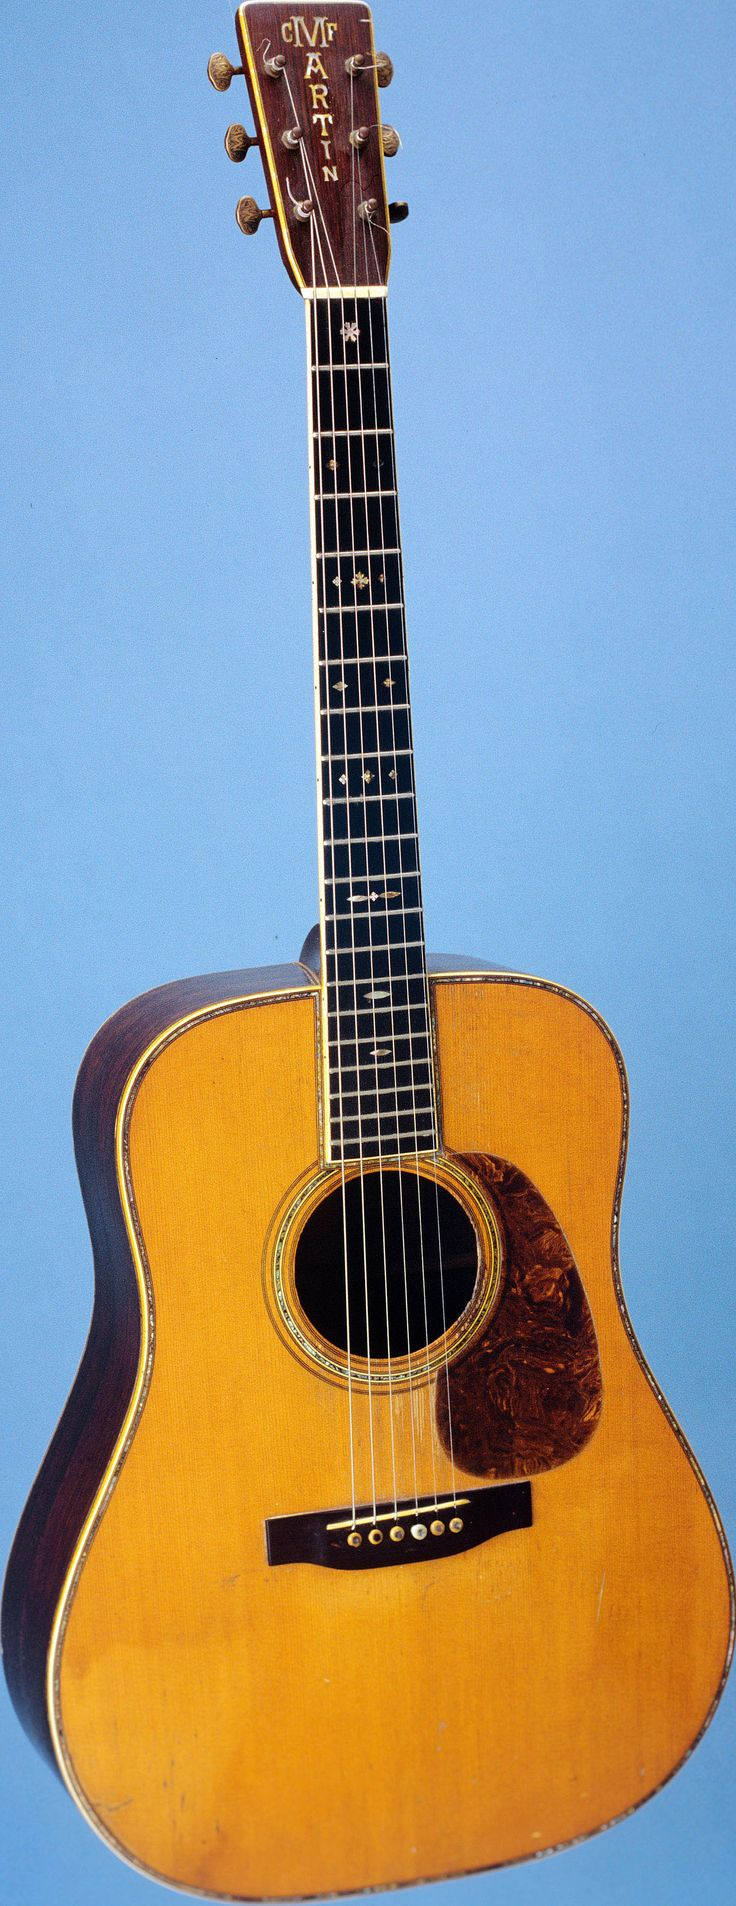 Martin-d45-1938: Guitar Pickin, Awesome Guitar, Hollow Body Guitar, Guitar Madness, Martin Guitars, Acoustic Guitar, D 45 Guitar, Collection Guitar, Dreams Guitar